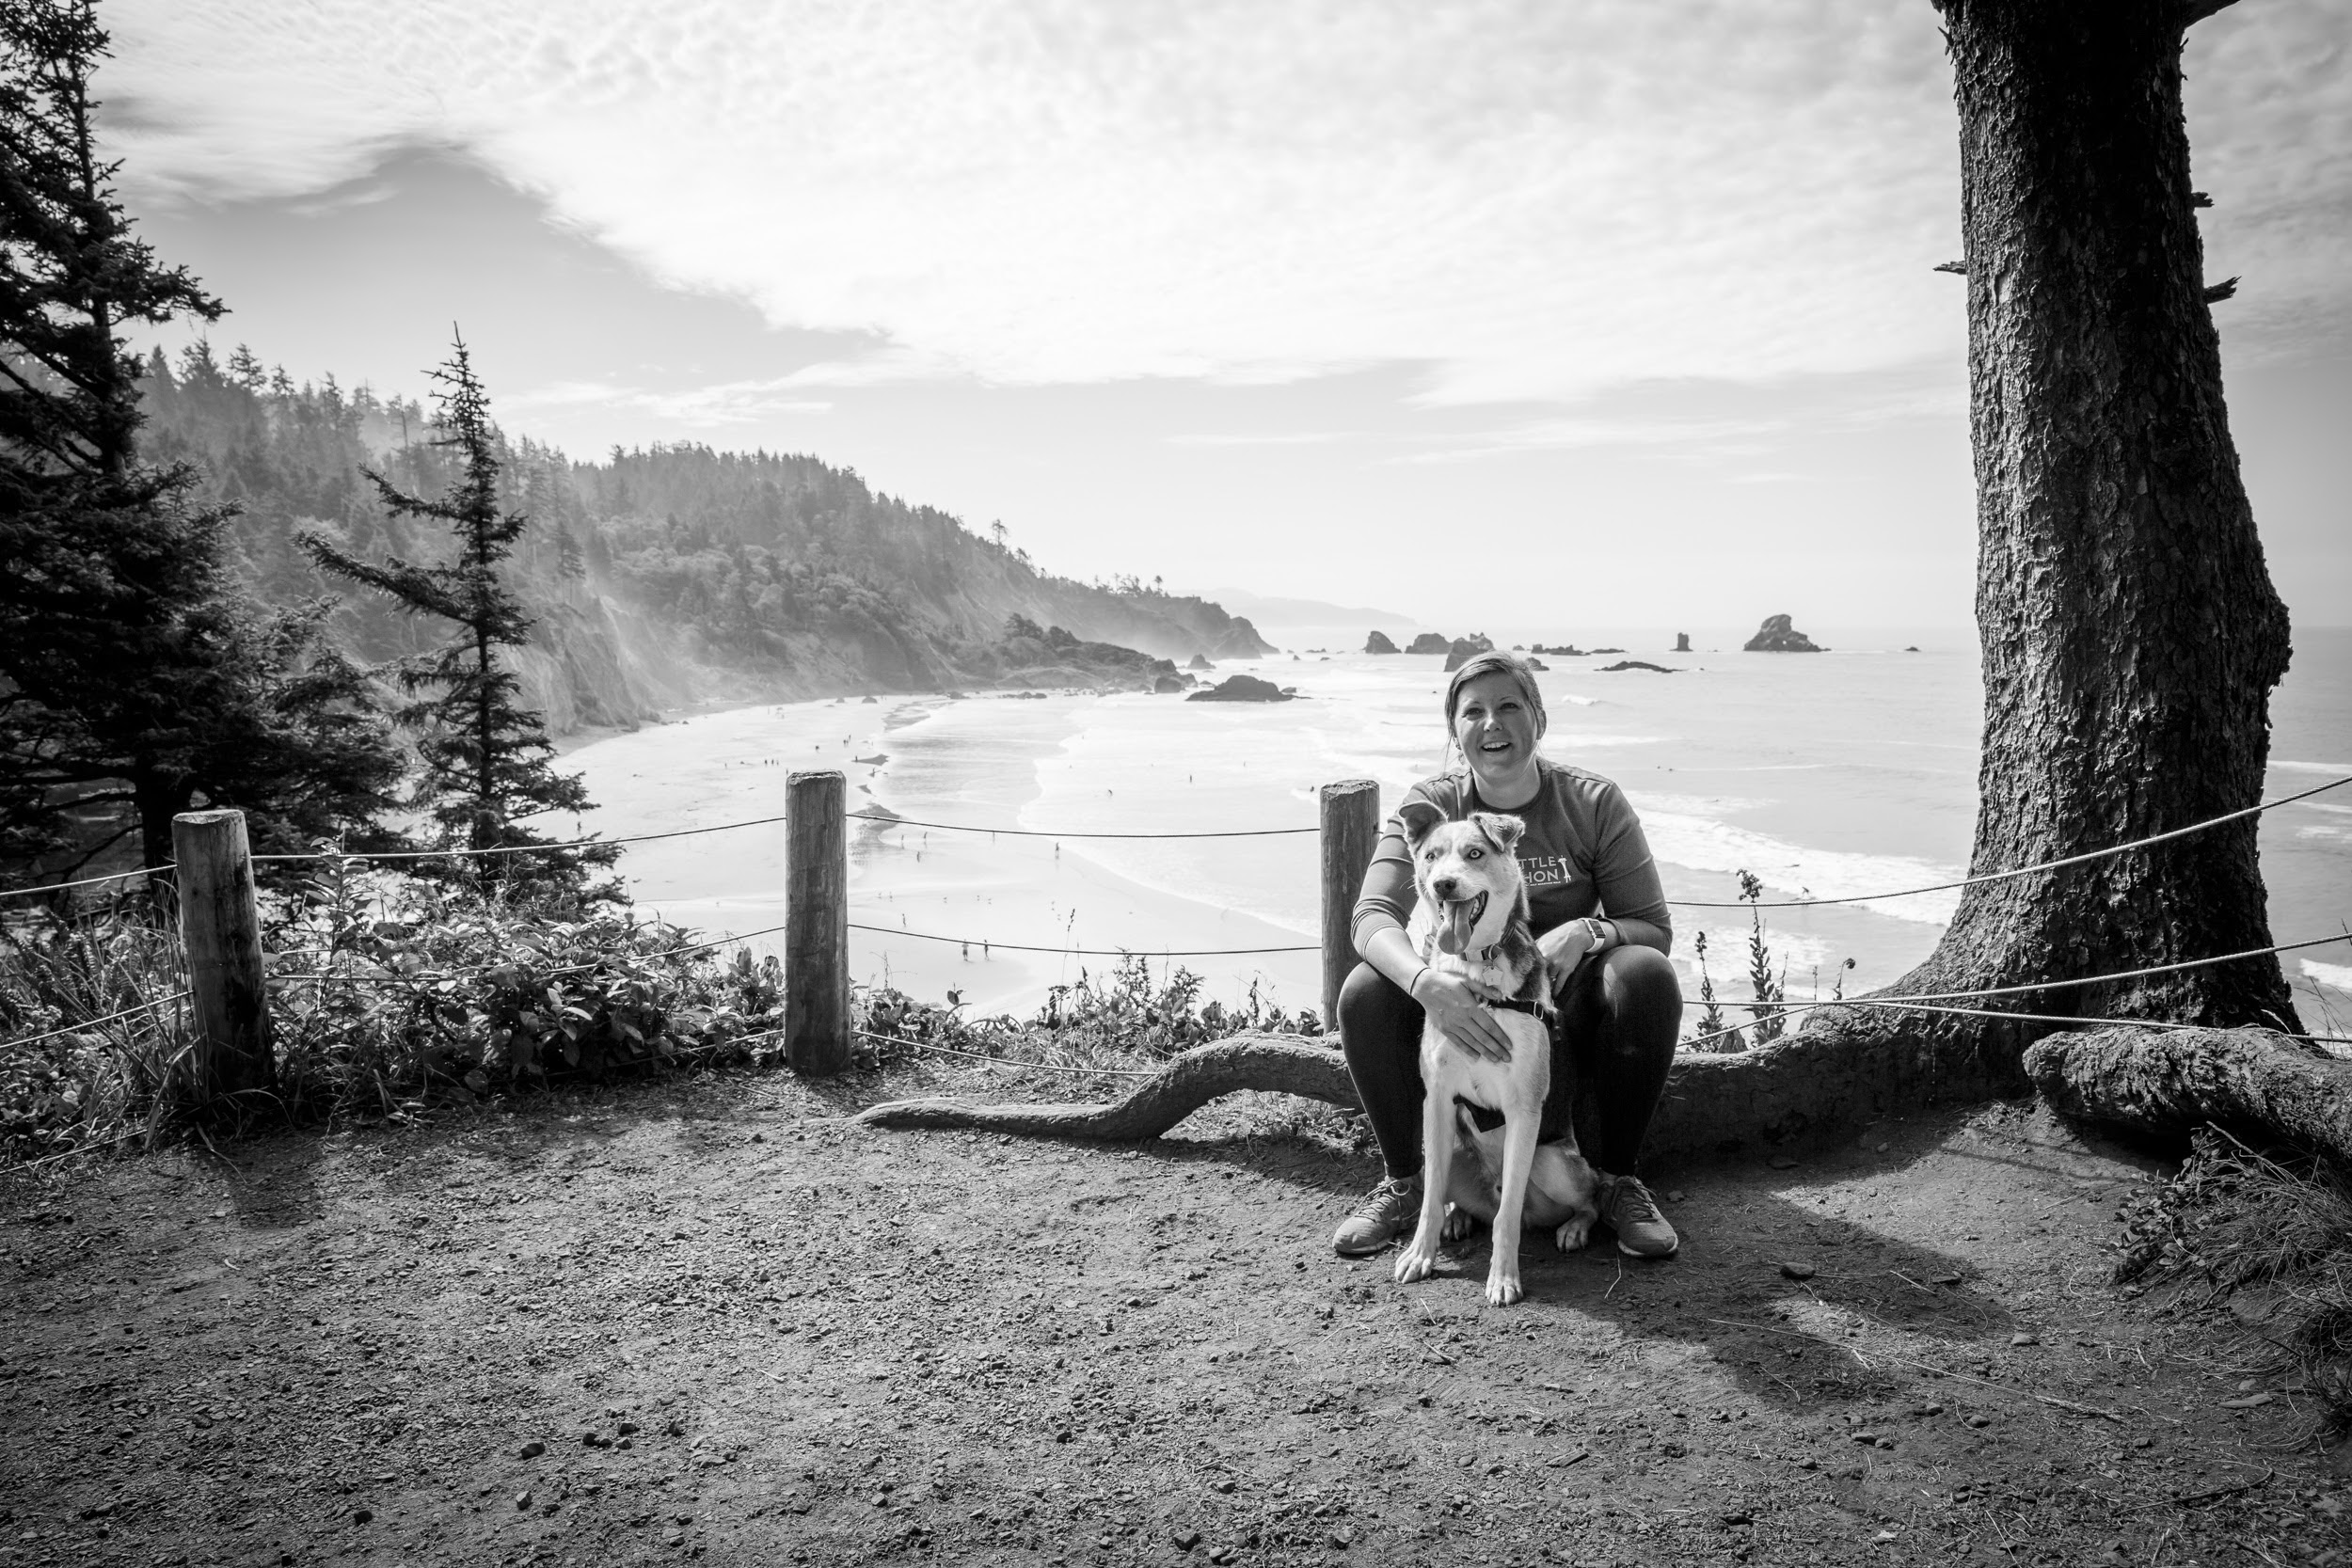 PNW Life: Cannon Beach, OR